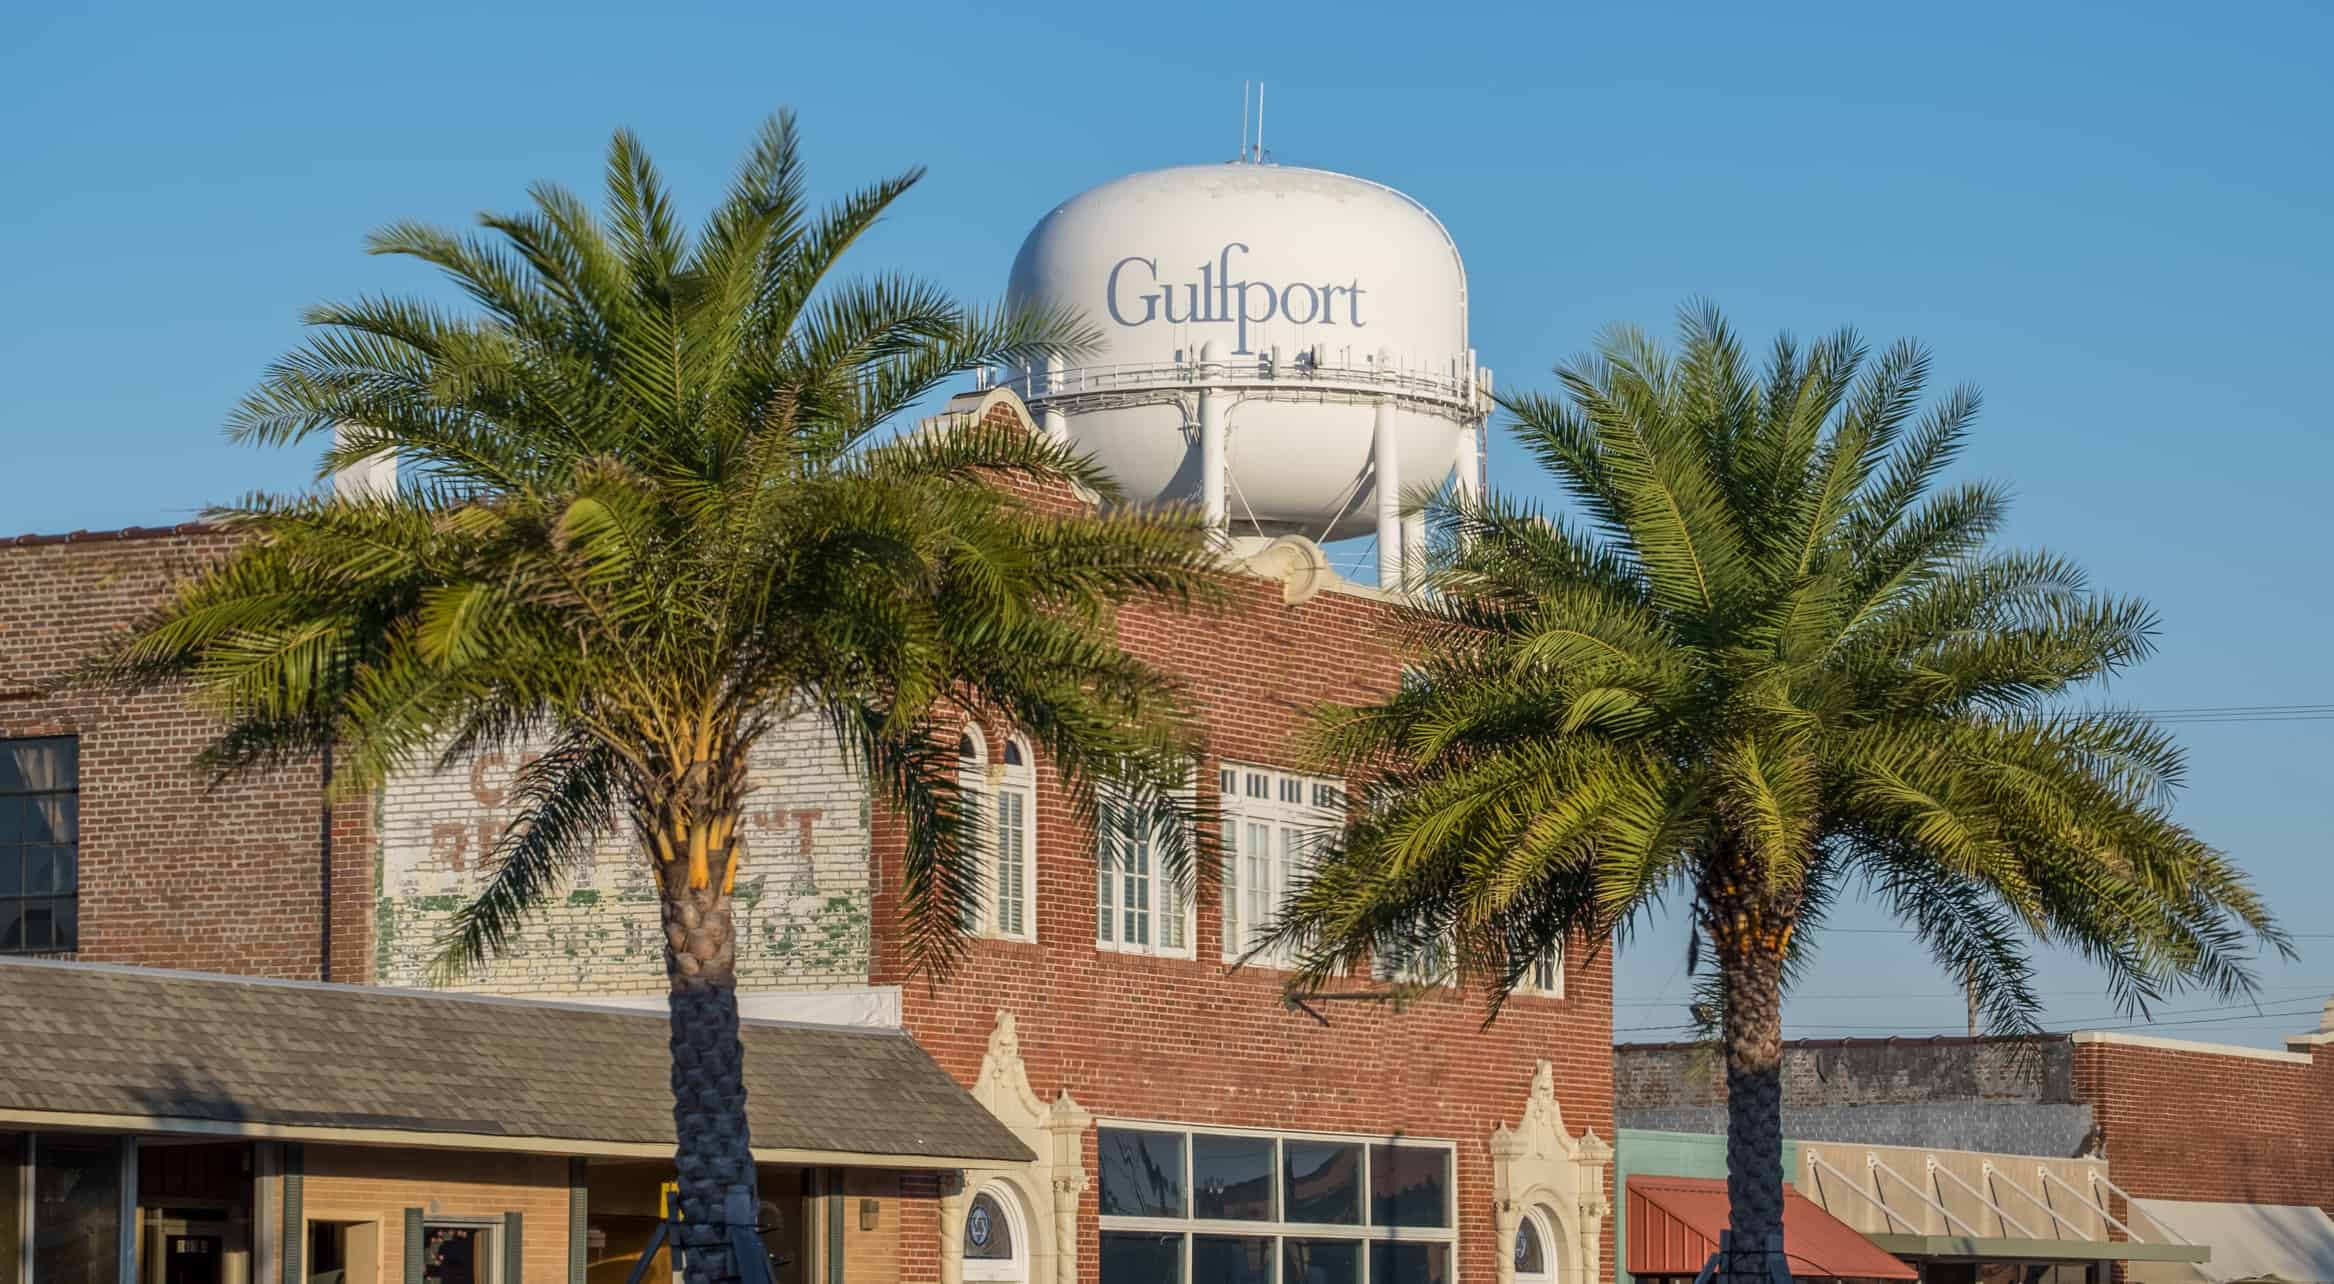 Water tower and buildings in Gulfport, Mississippi